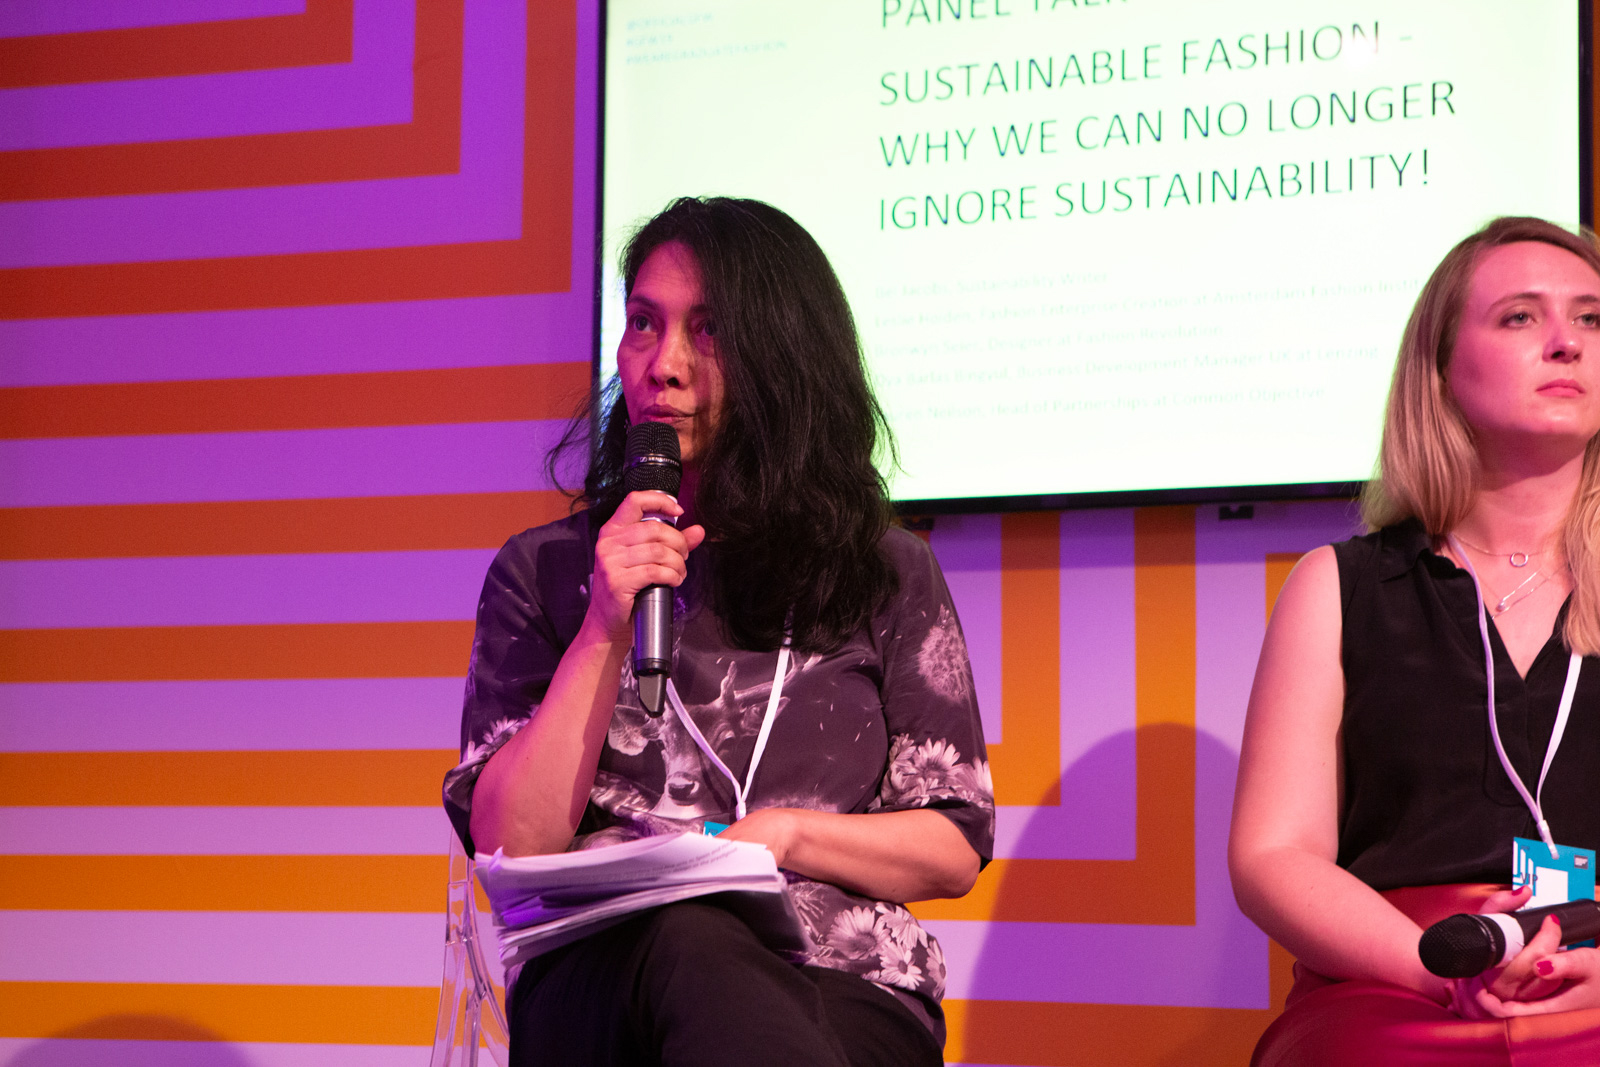 GFWLIVE_SUSTAINABILITY_by_BeckyMukerji (39 of 21).jpg